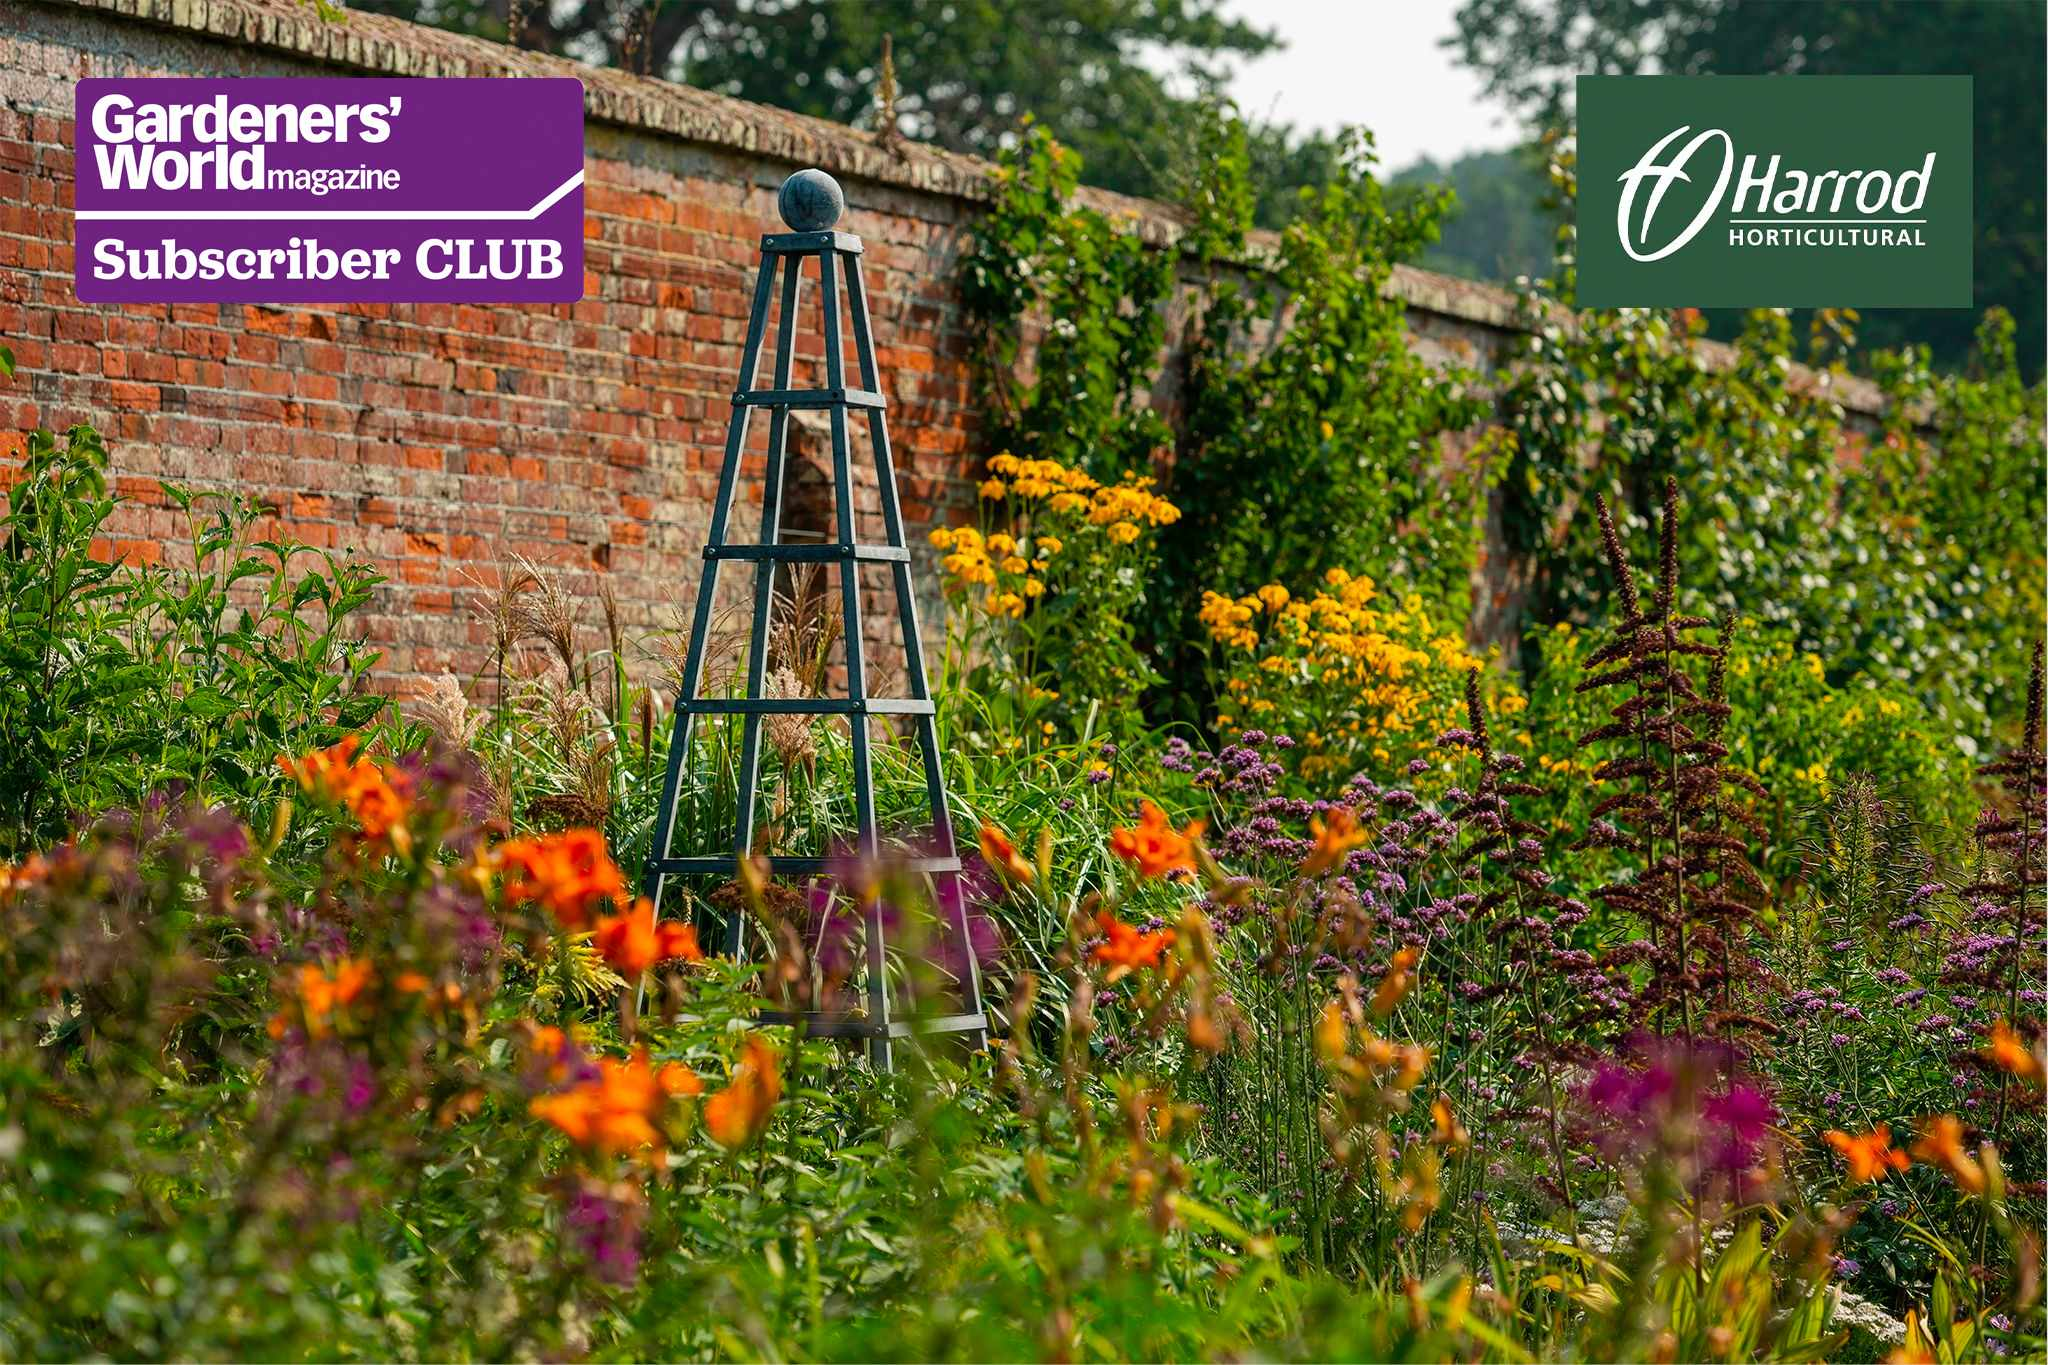 Win a hand-crafted plant support by Harrod Horticultural - BBC Gardeners' World Magazine